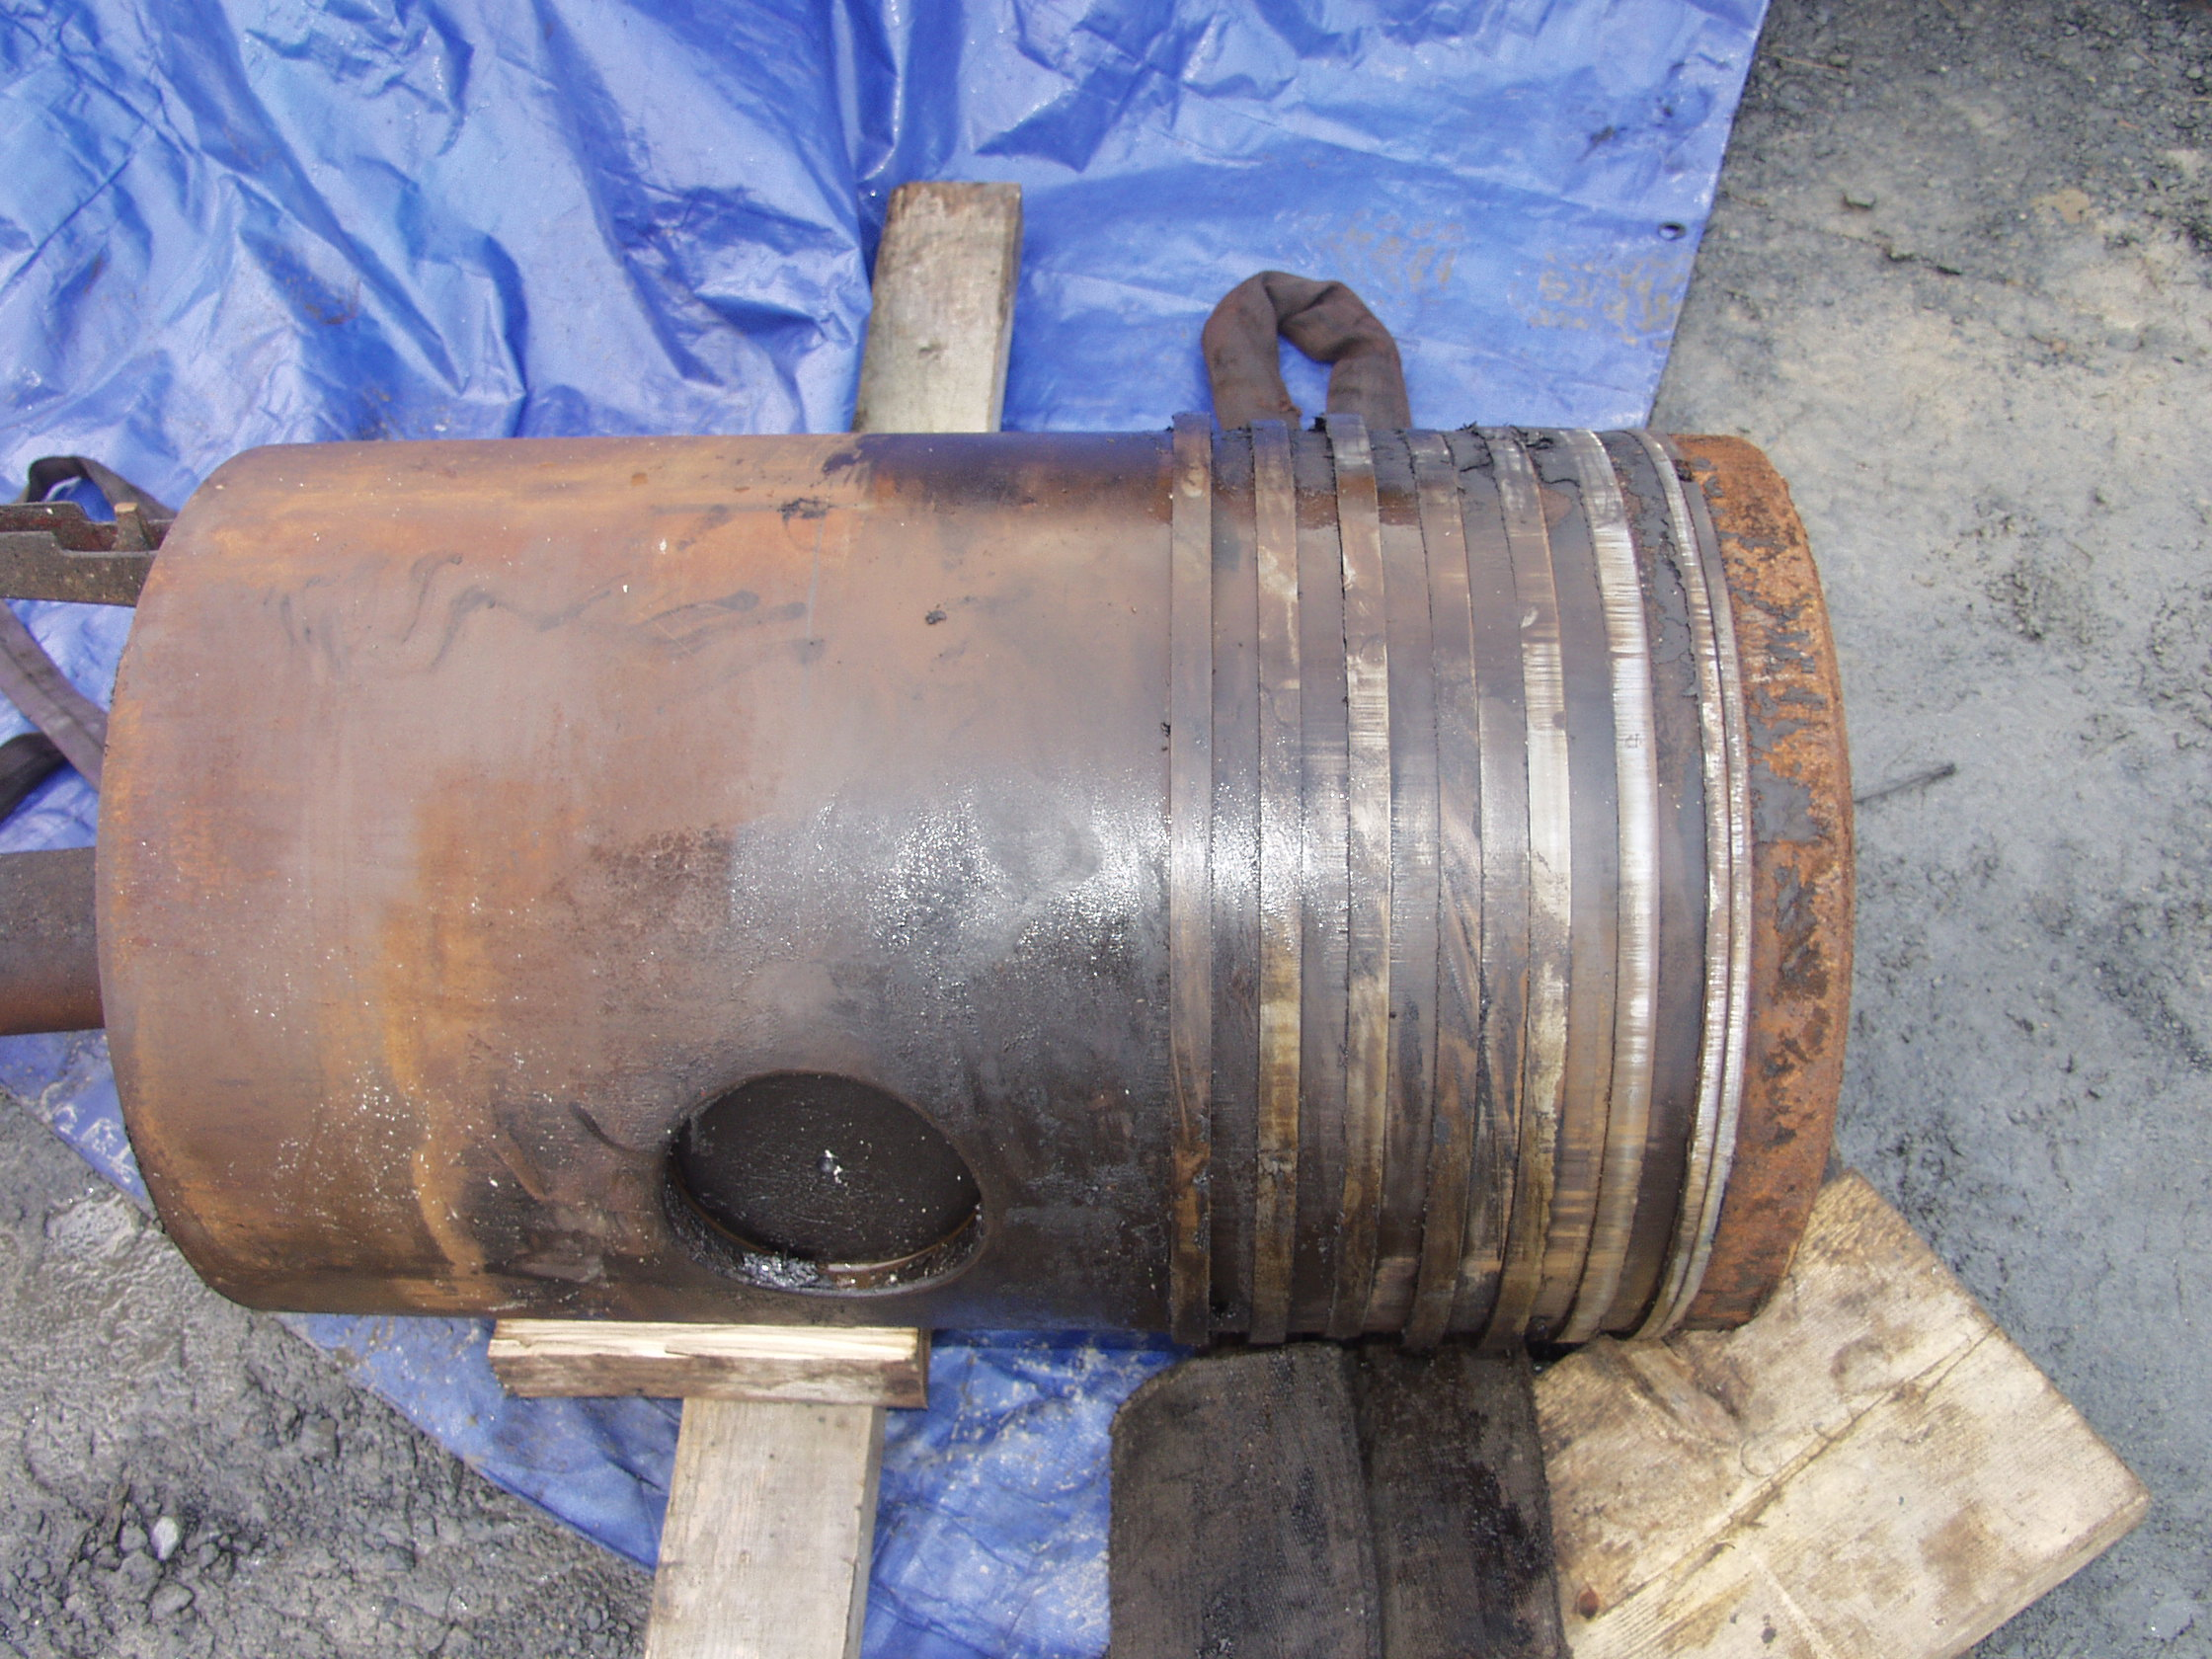 Piston and rod after removal.Required a 20 ton jack to pull out after 30 years at the top of the bore.